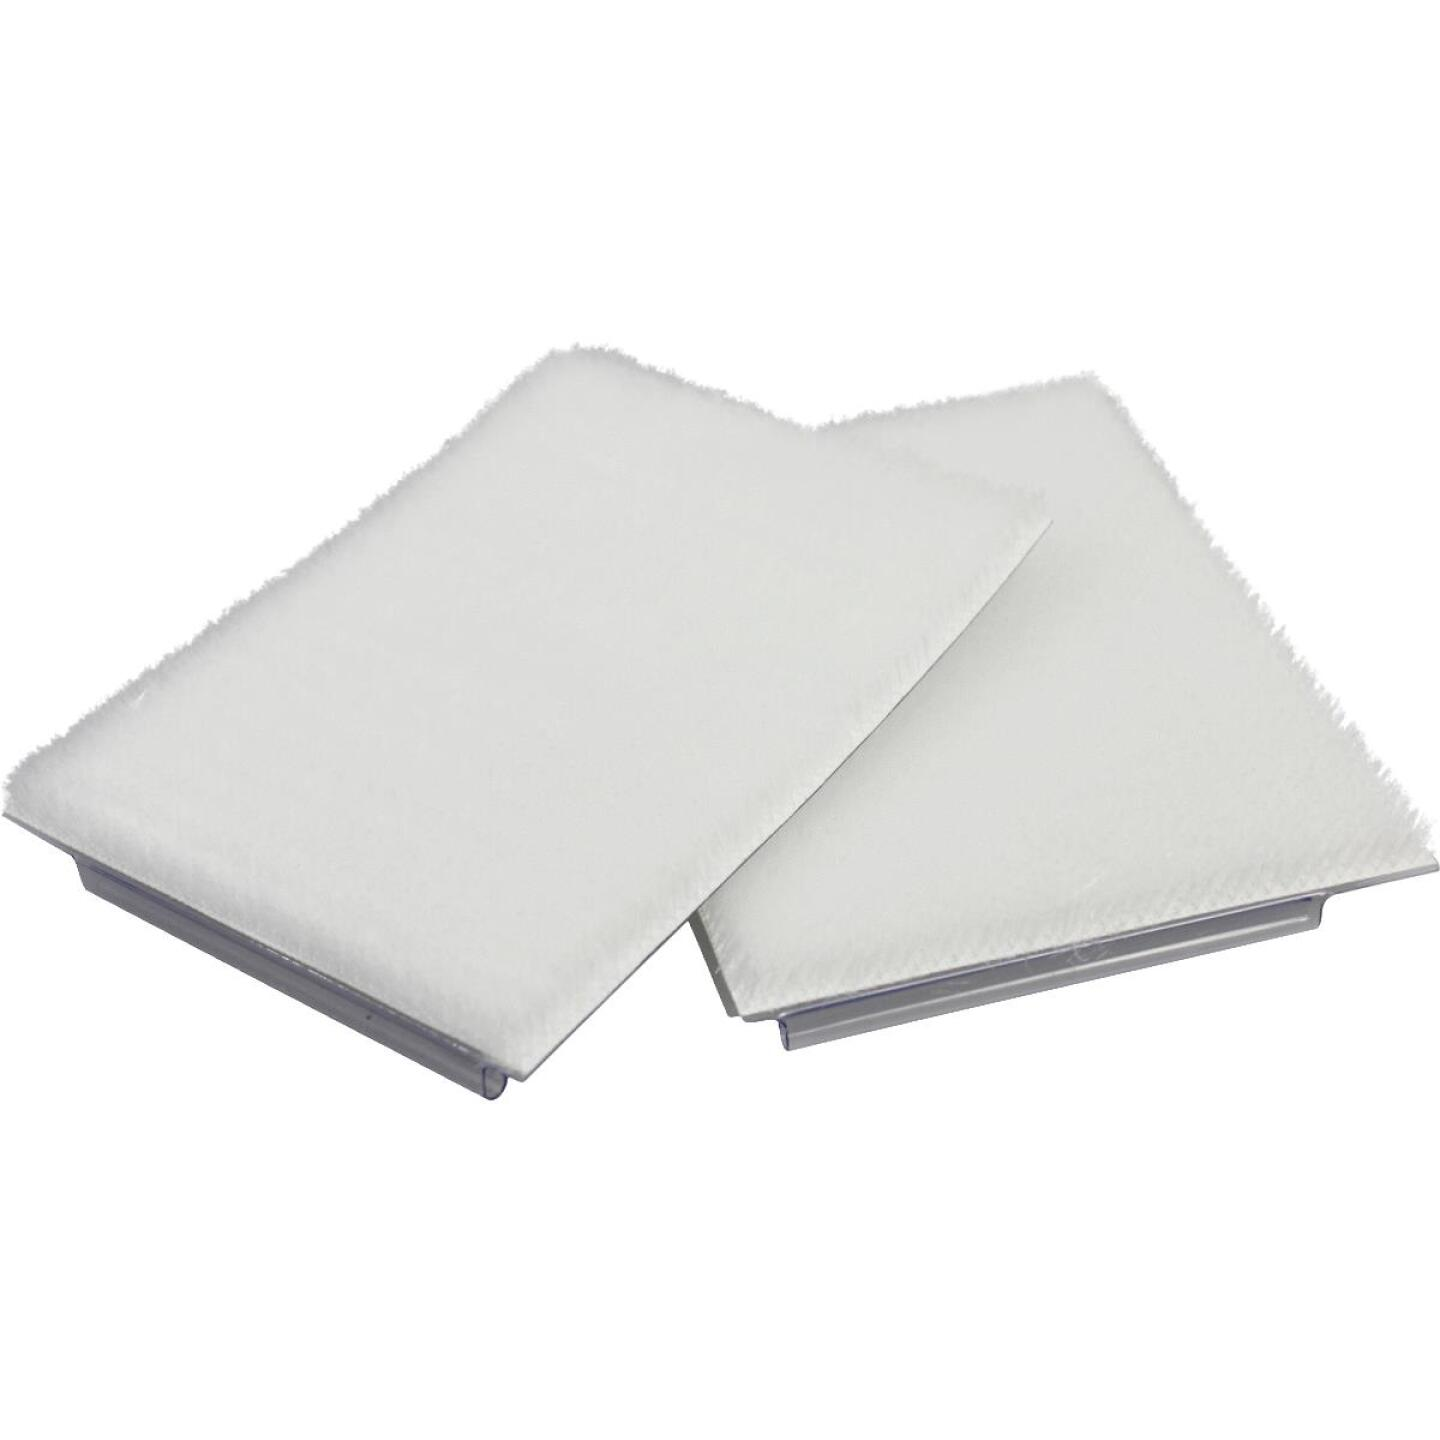 Shur-Line 5 In. Replacement Paint Pad, ( 2- Pack) Image 2